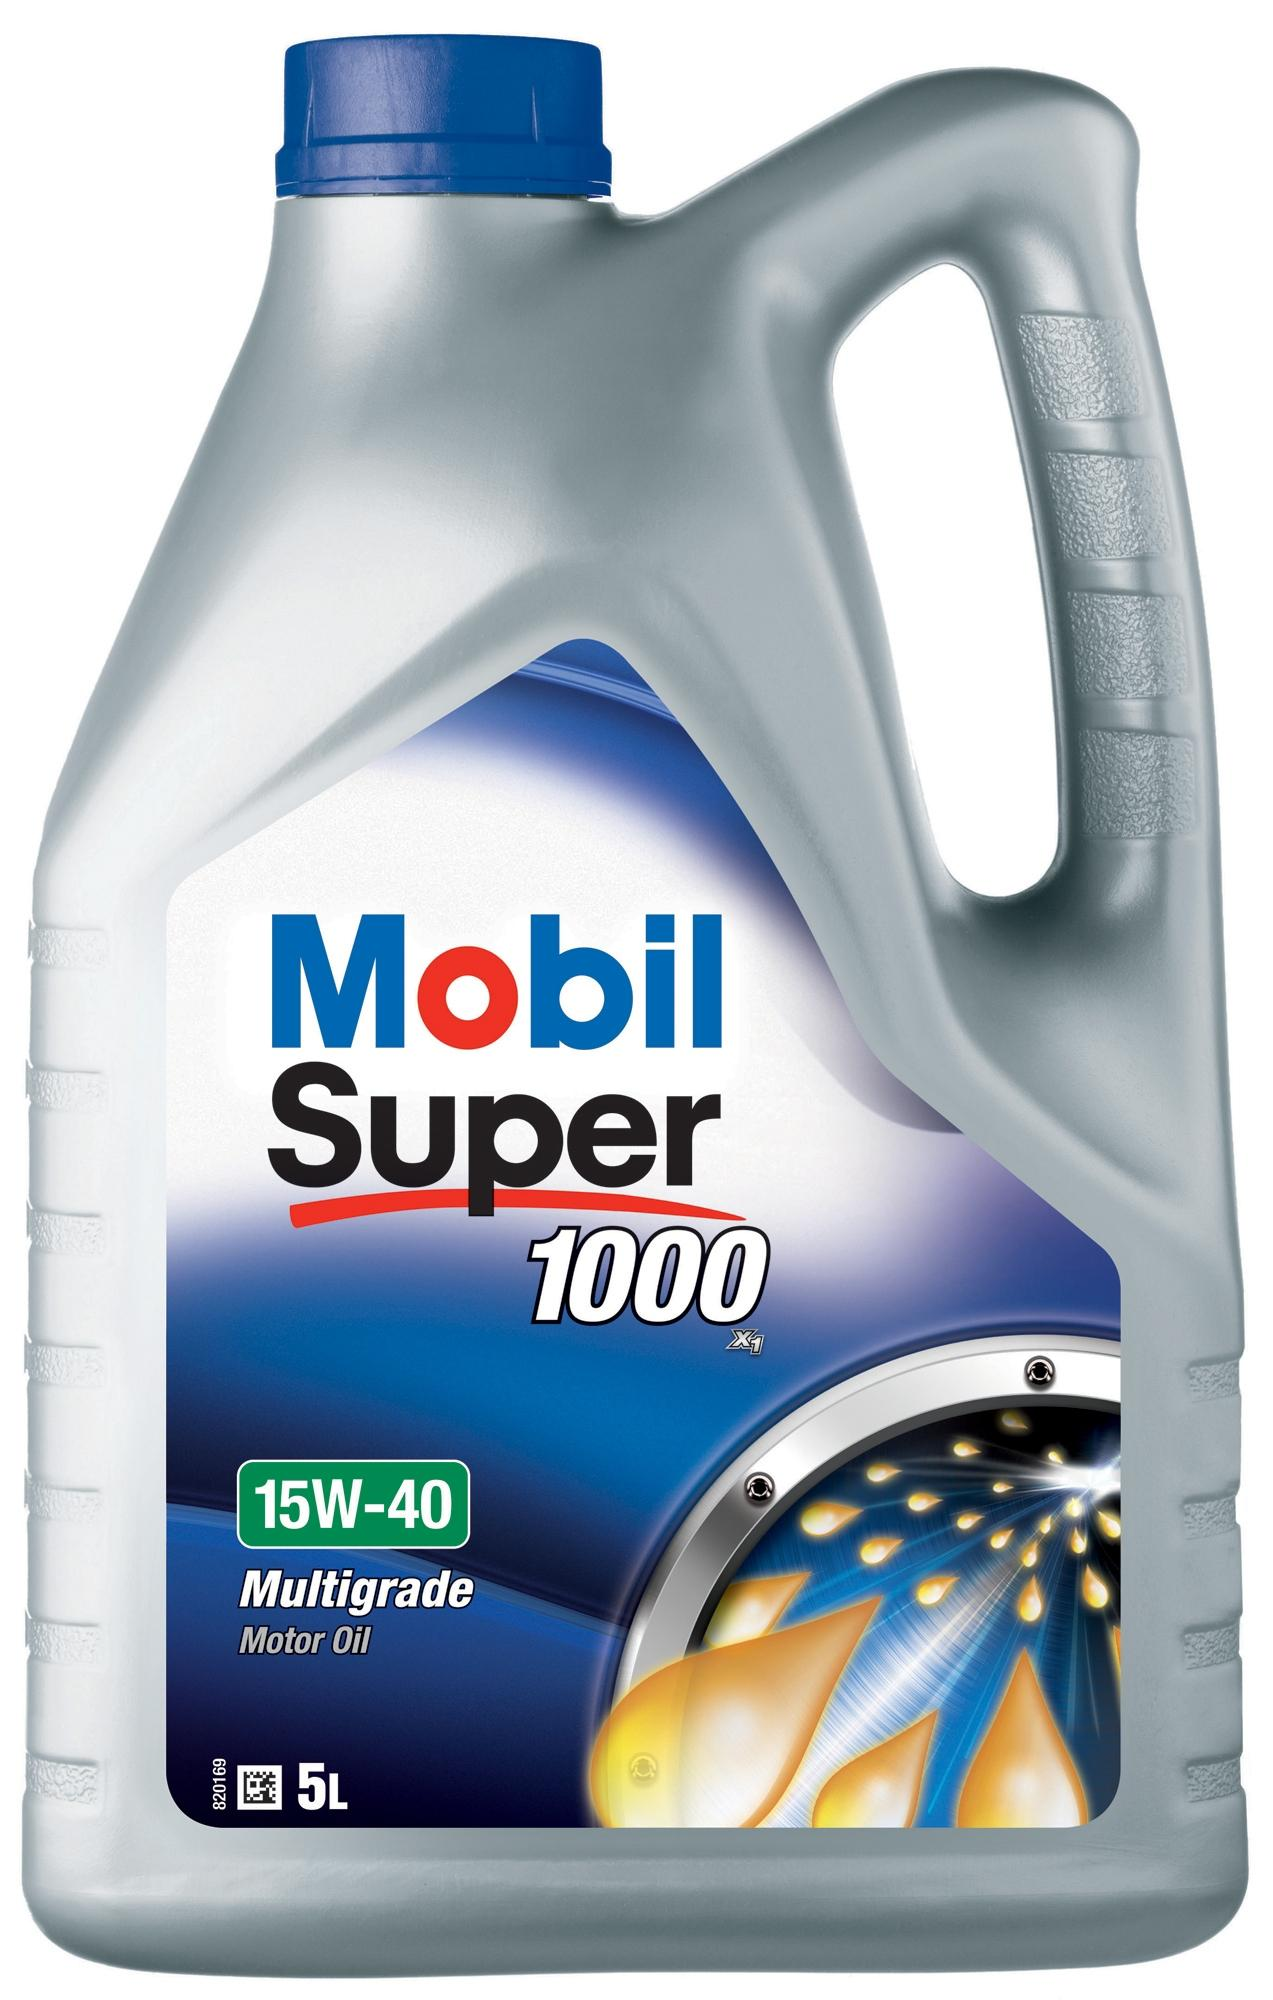 Mobil super 1000 x1 15w 40 engine motor mineral oil 5l for Cheap motor oil online